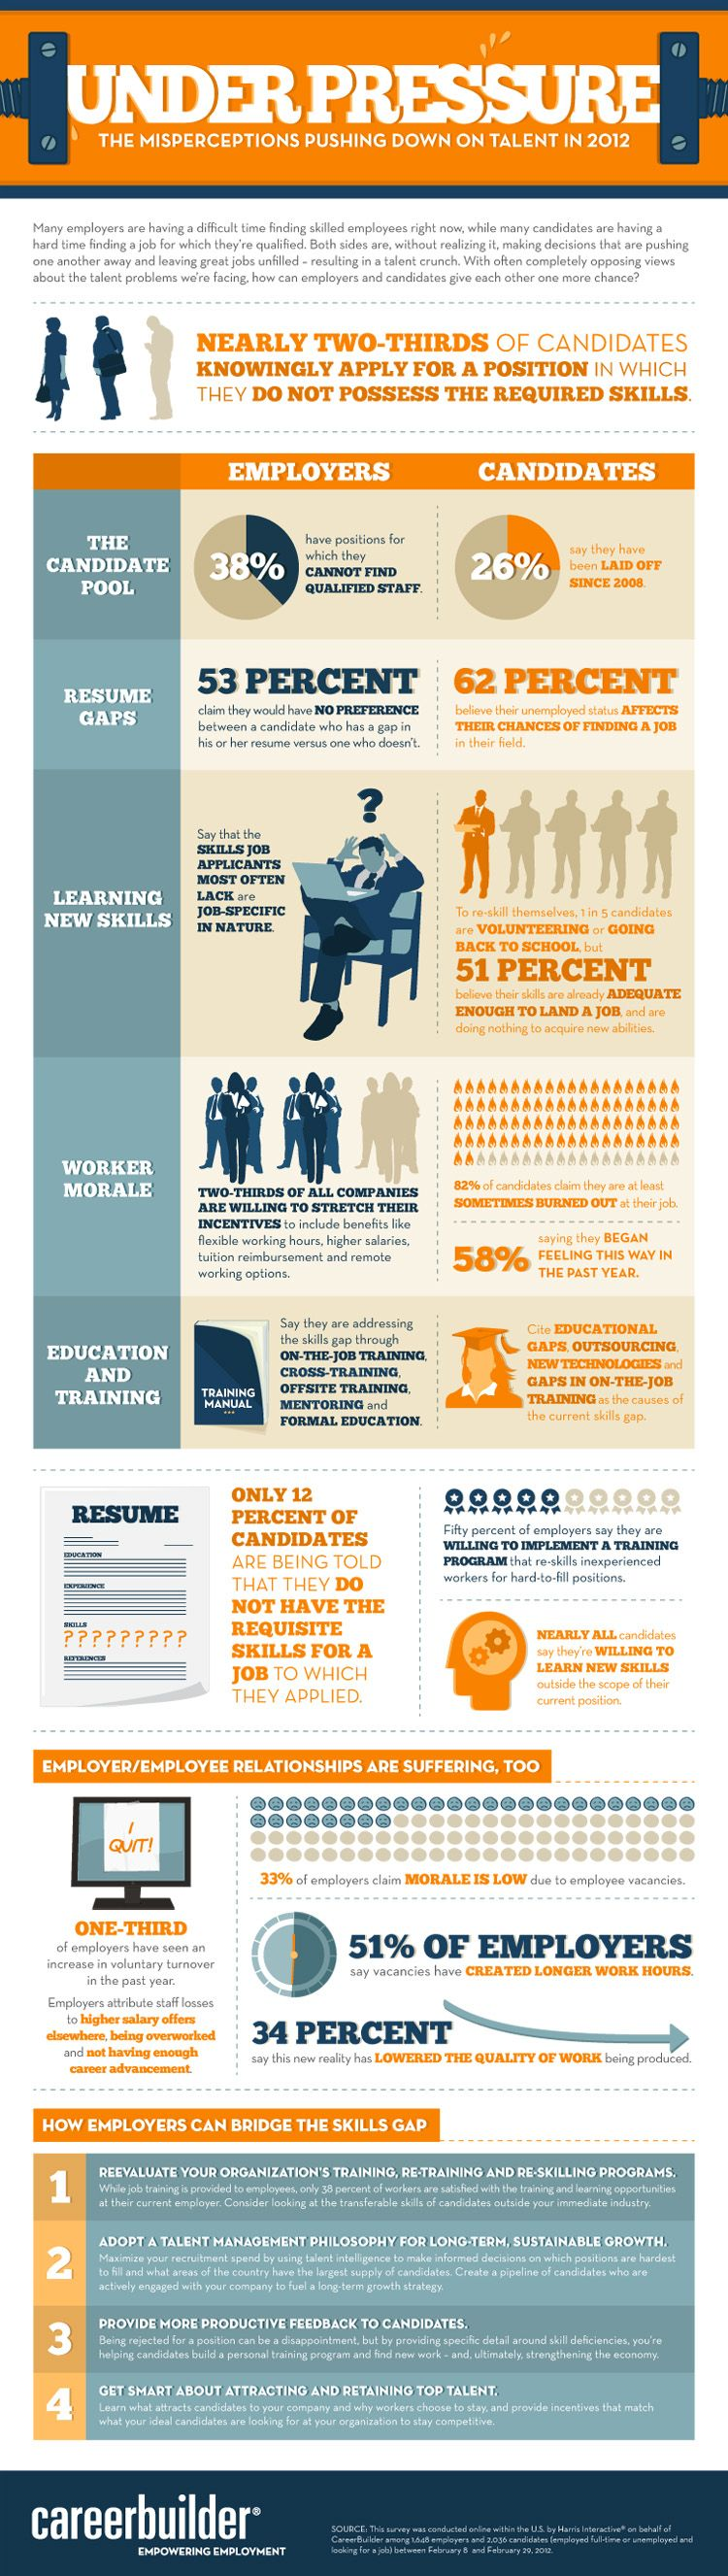 according to a careerbuilder study many employers are having a many employers are having a difficult time finding skilled employees while many candidates are having a hard time finding a job for which they are